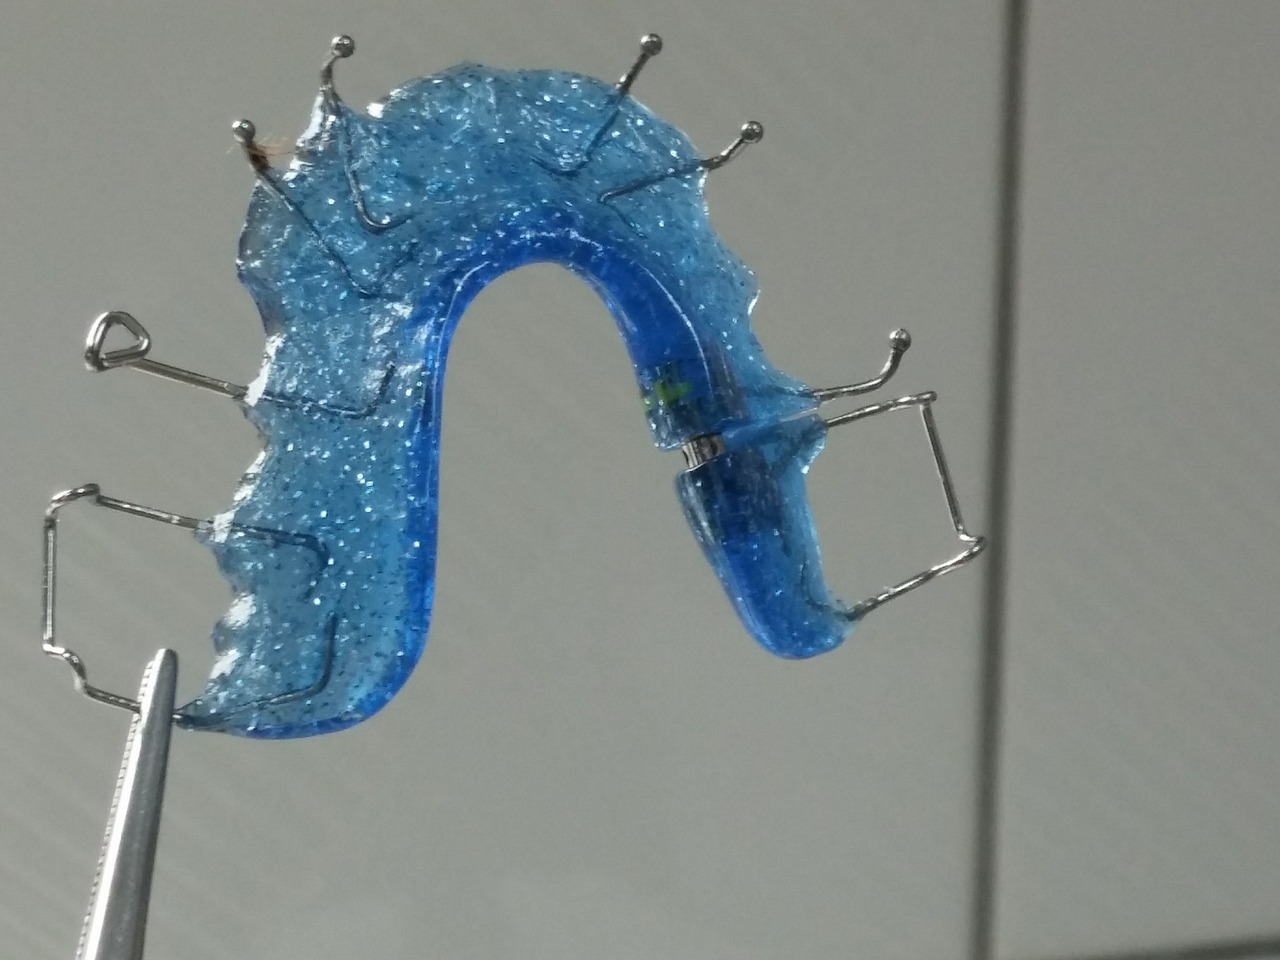 How does the Invisalign Invisible Brace work in straightening crooked smiles?